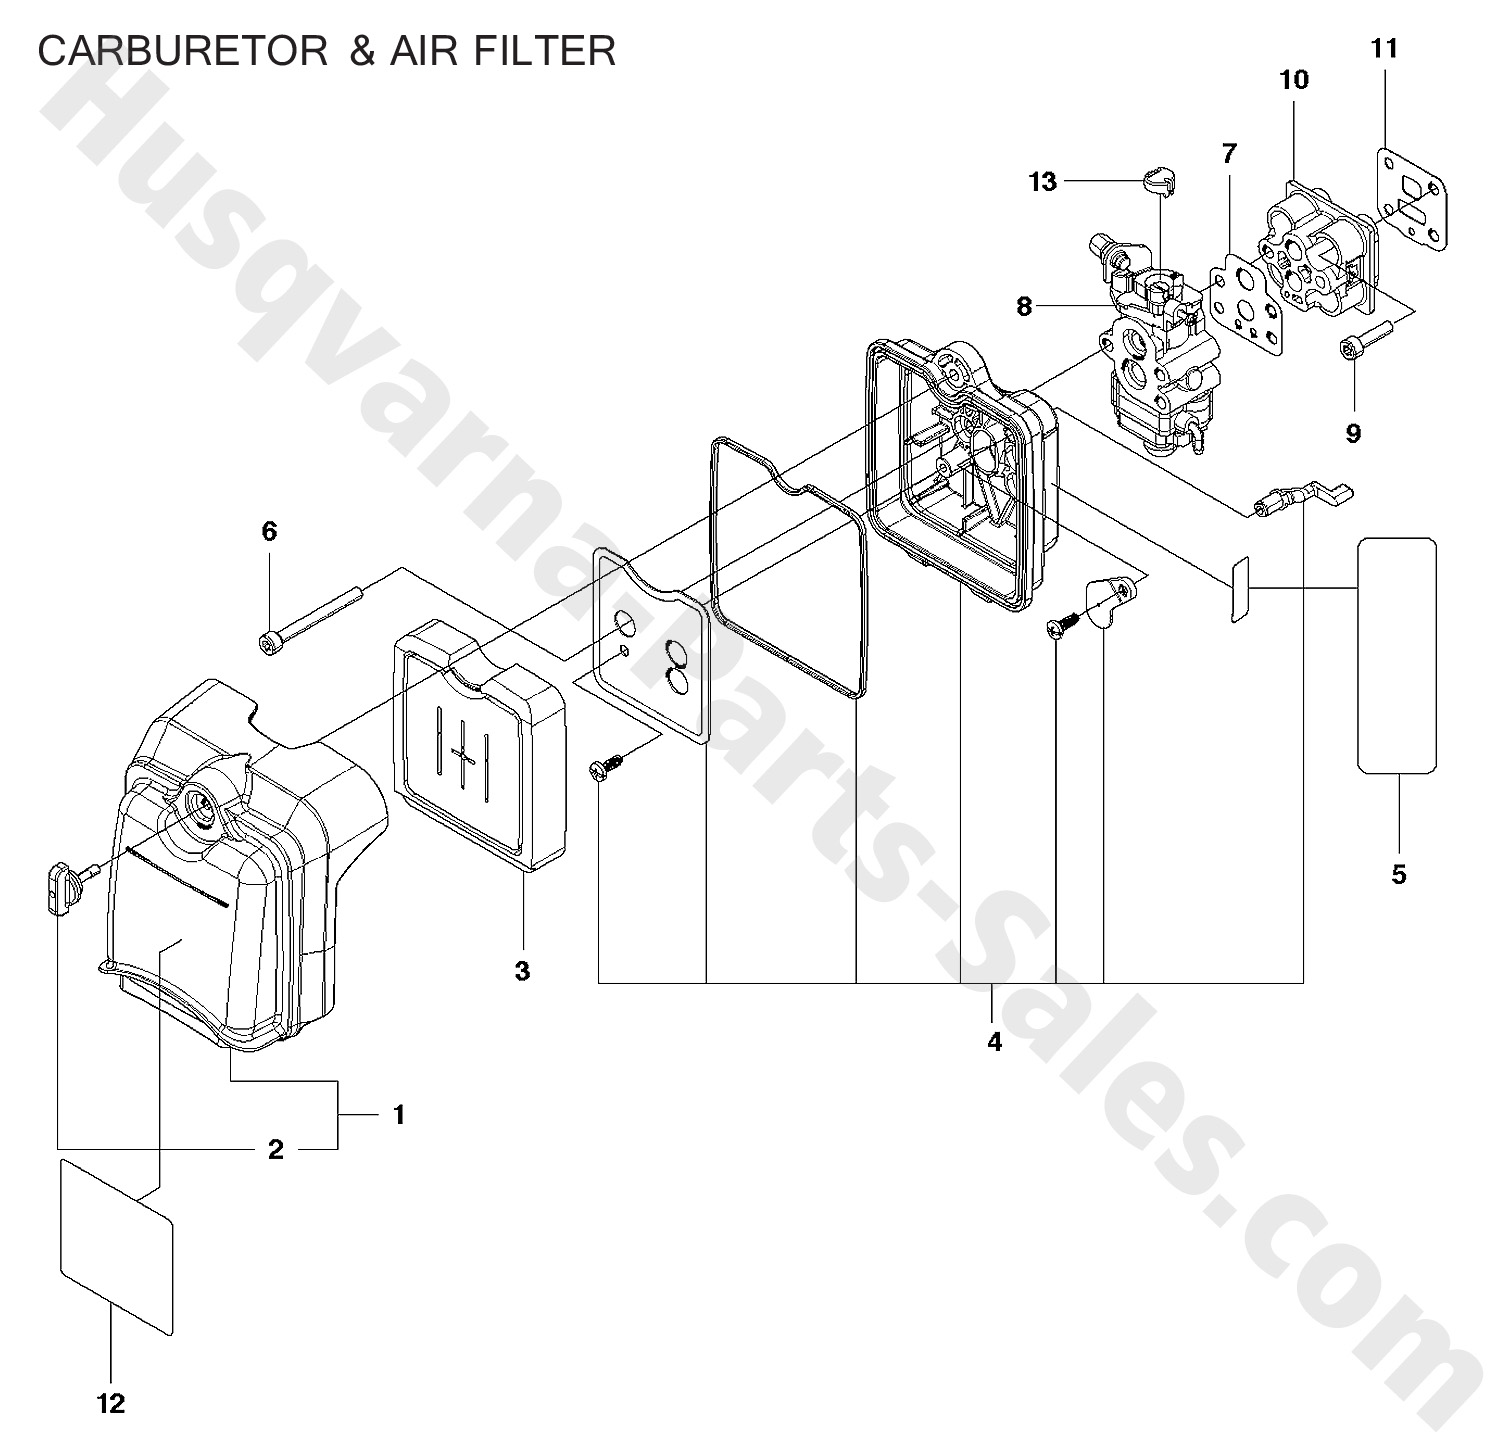 echo leaf blower parts diagram 05 ford explorer radio wiring gas backpack blowers diagrams